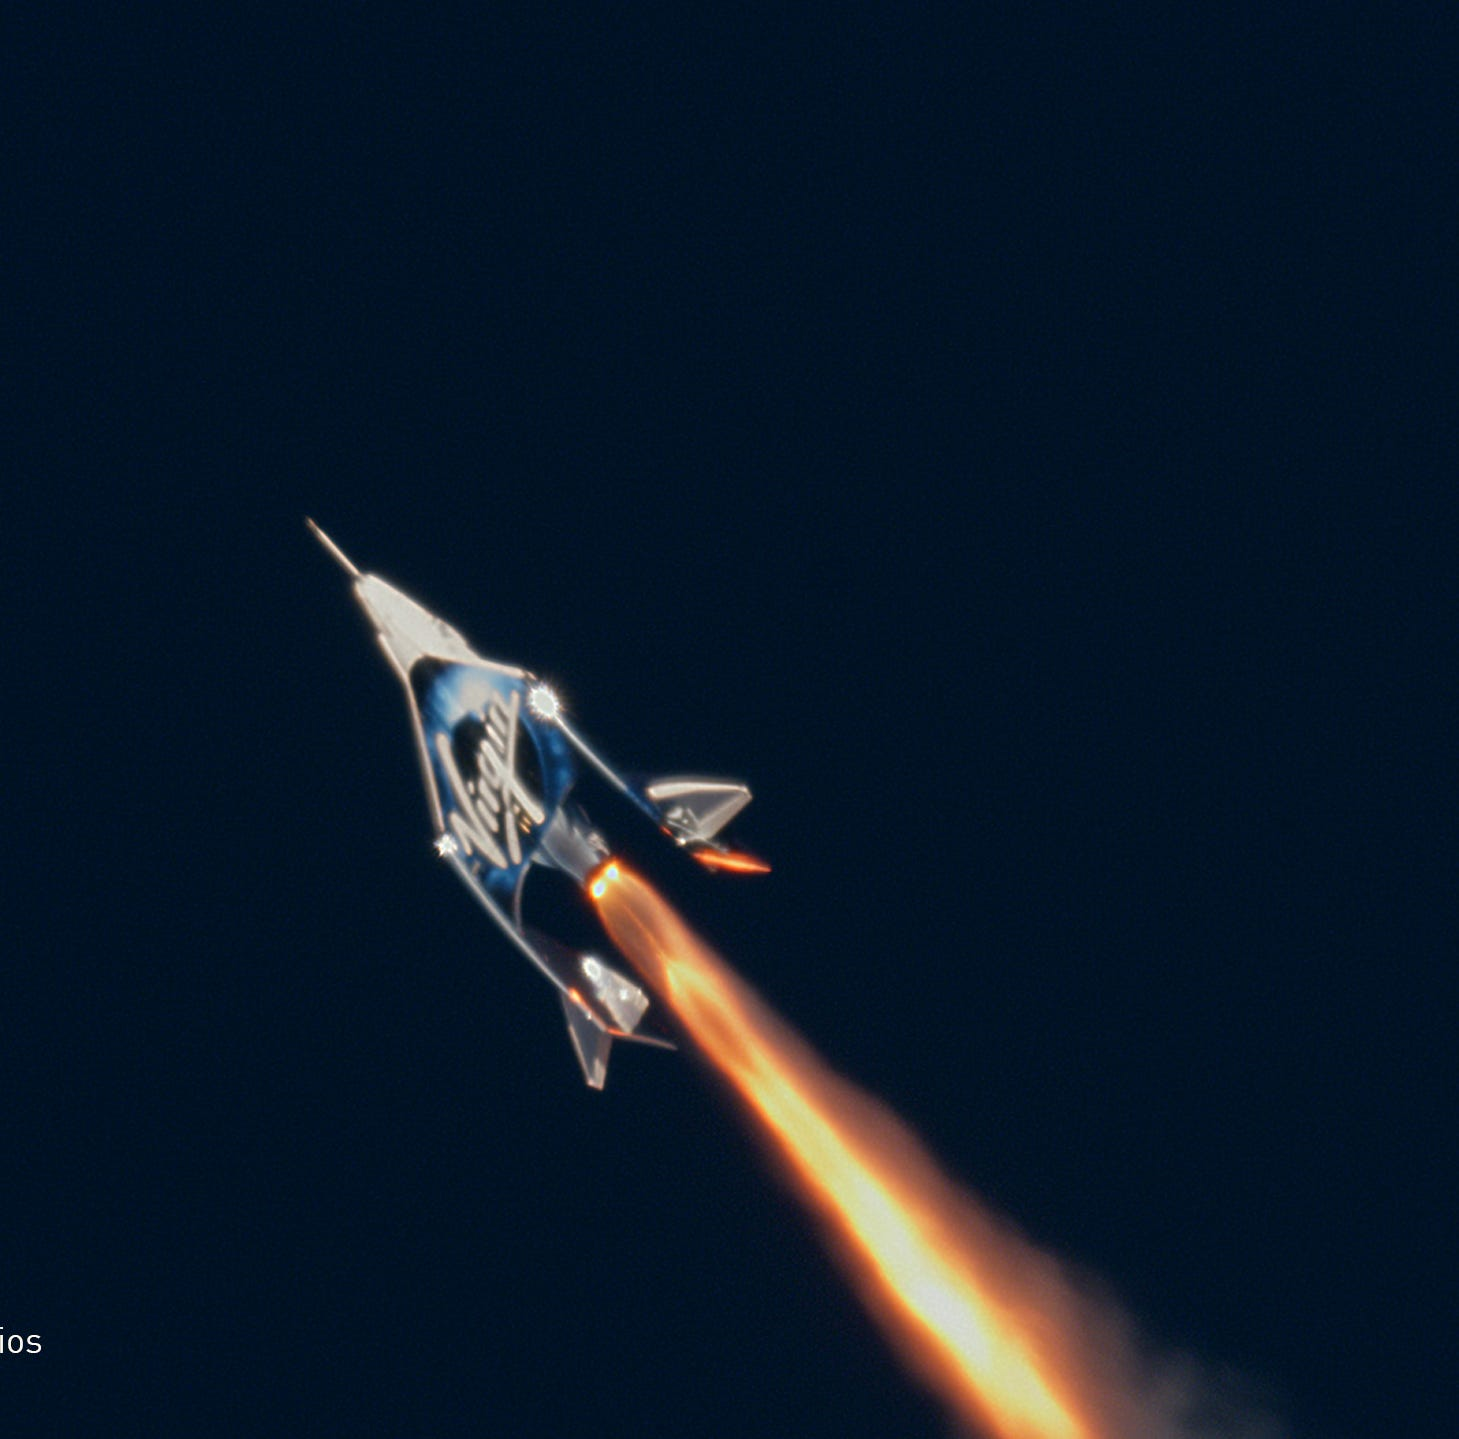 Test pilots reach space on Virgin Galactic's SpaceShipTwo